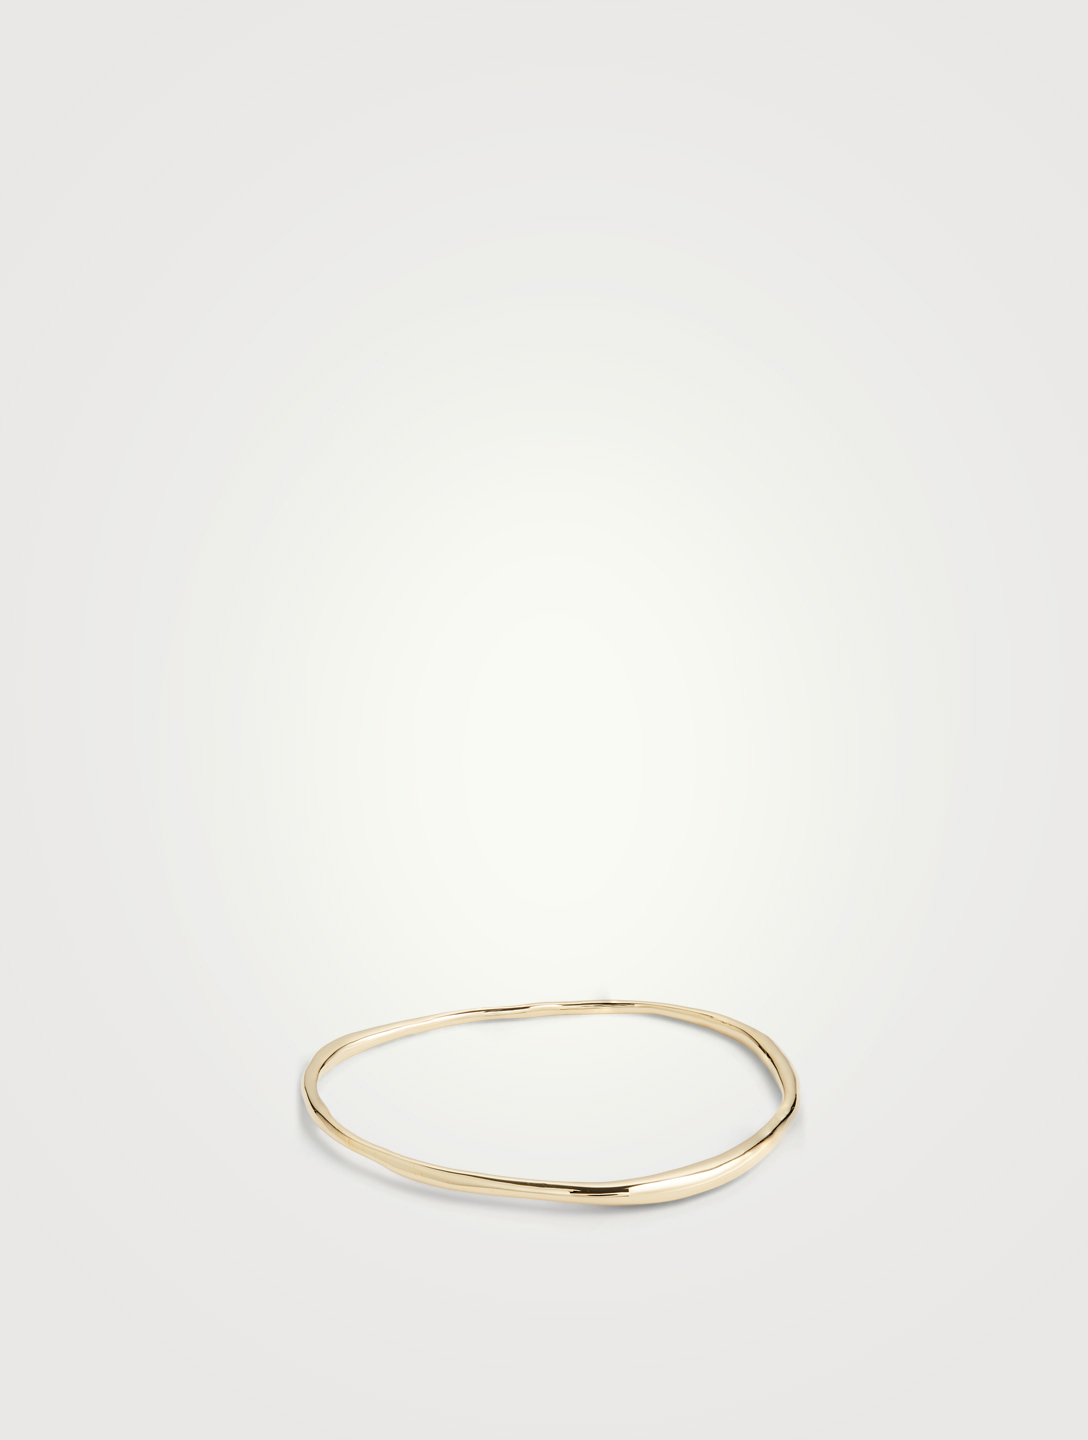 FARIS Vero Bangle Bracelet Women's Metallic